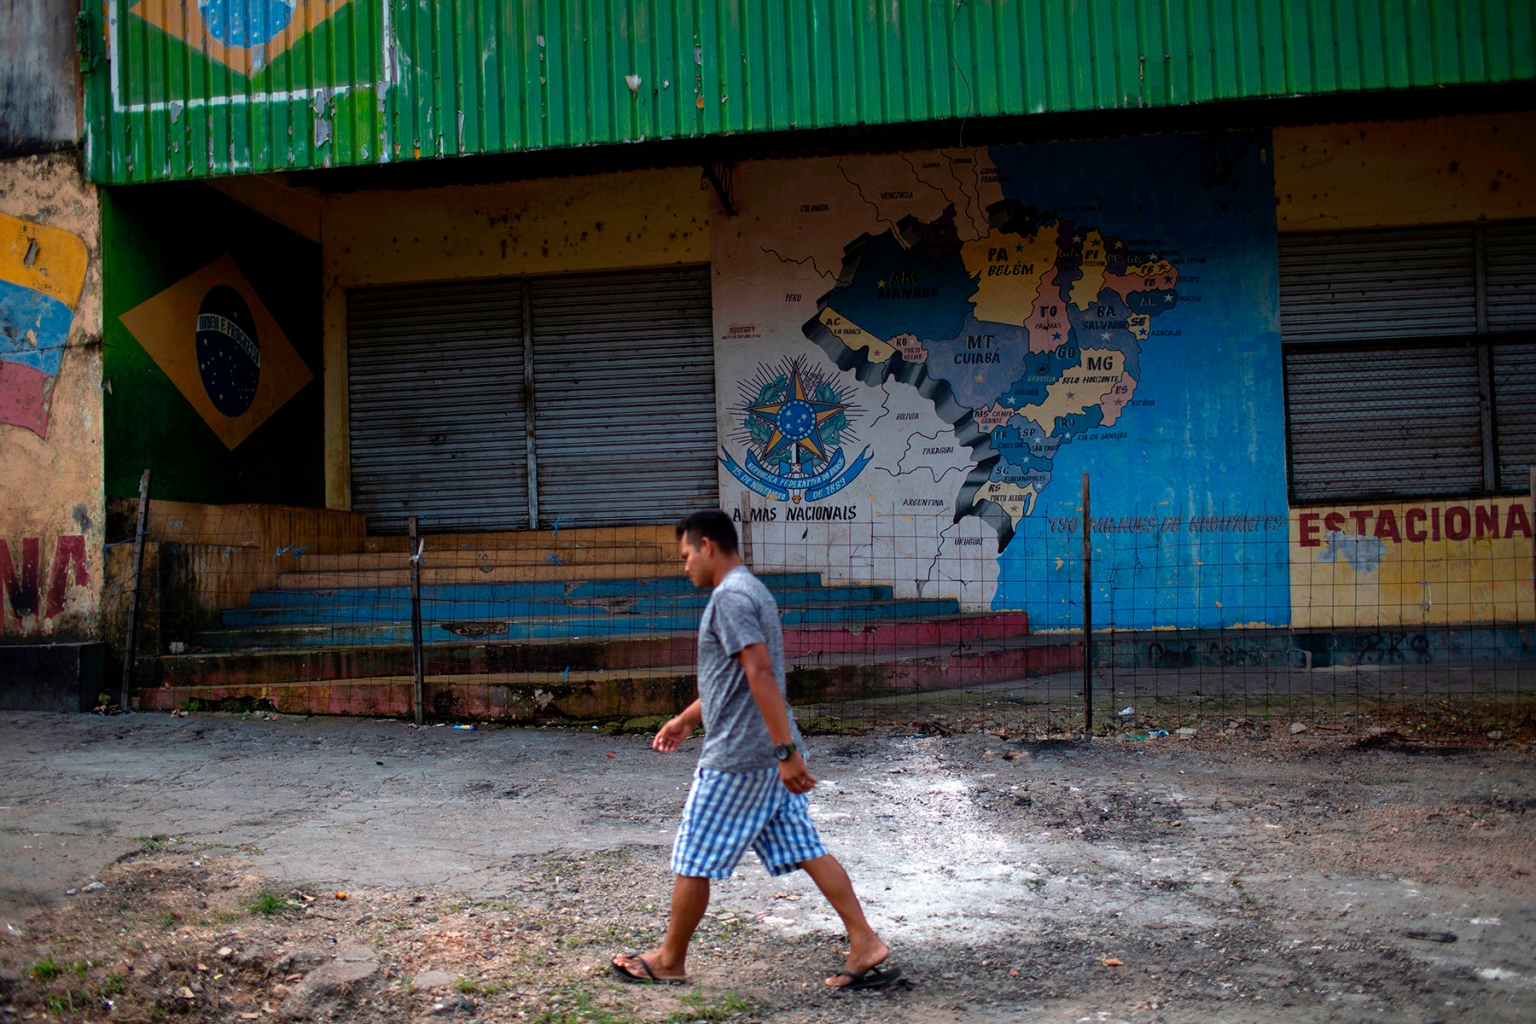 A man walks past one of the improvised refugee camps that was burned down last week by local residents in Pacaraima,  Brazil, on Aug. 20. MAURO PIMENTEL/AFP/Getty Images